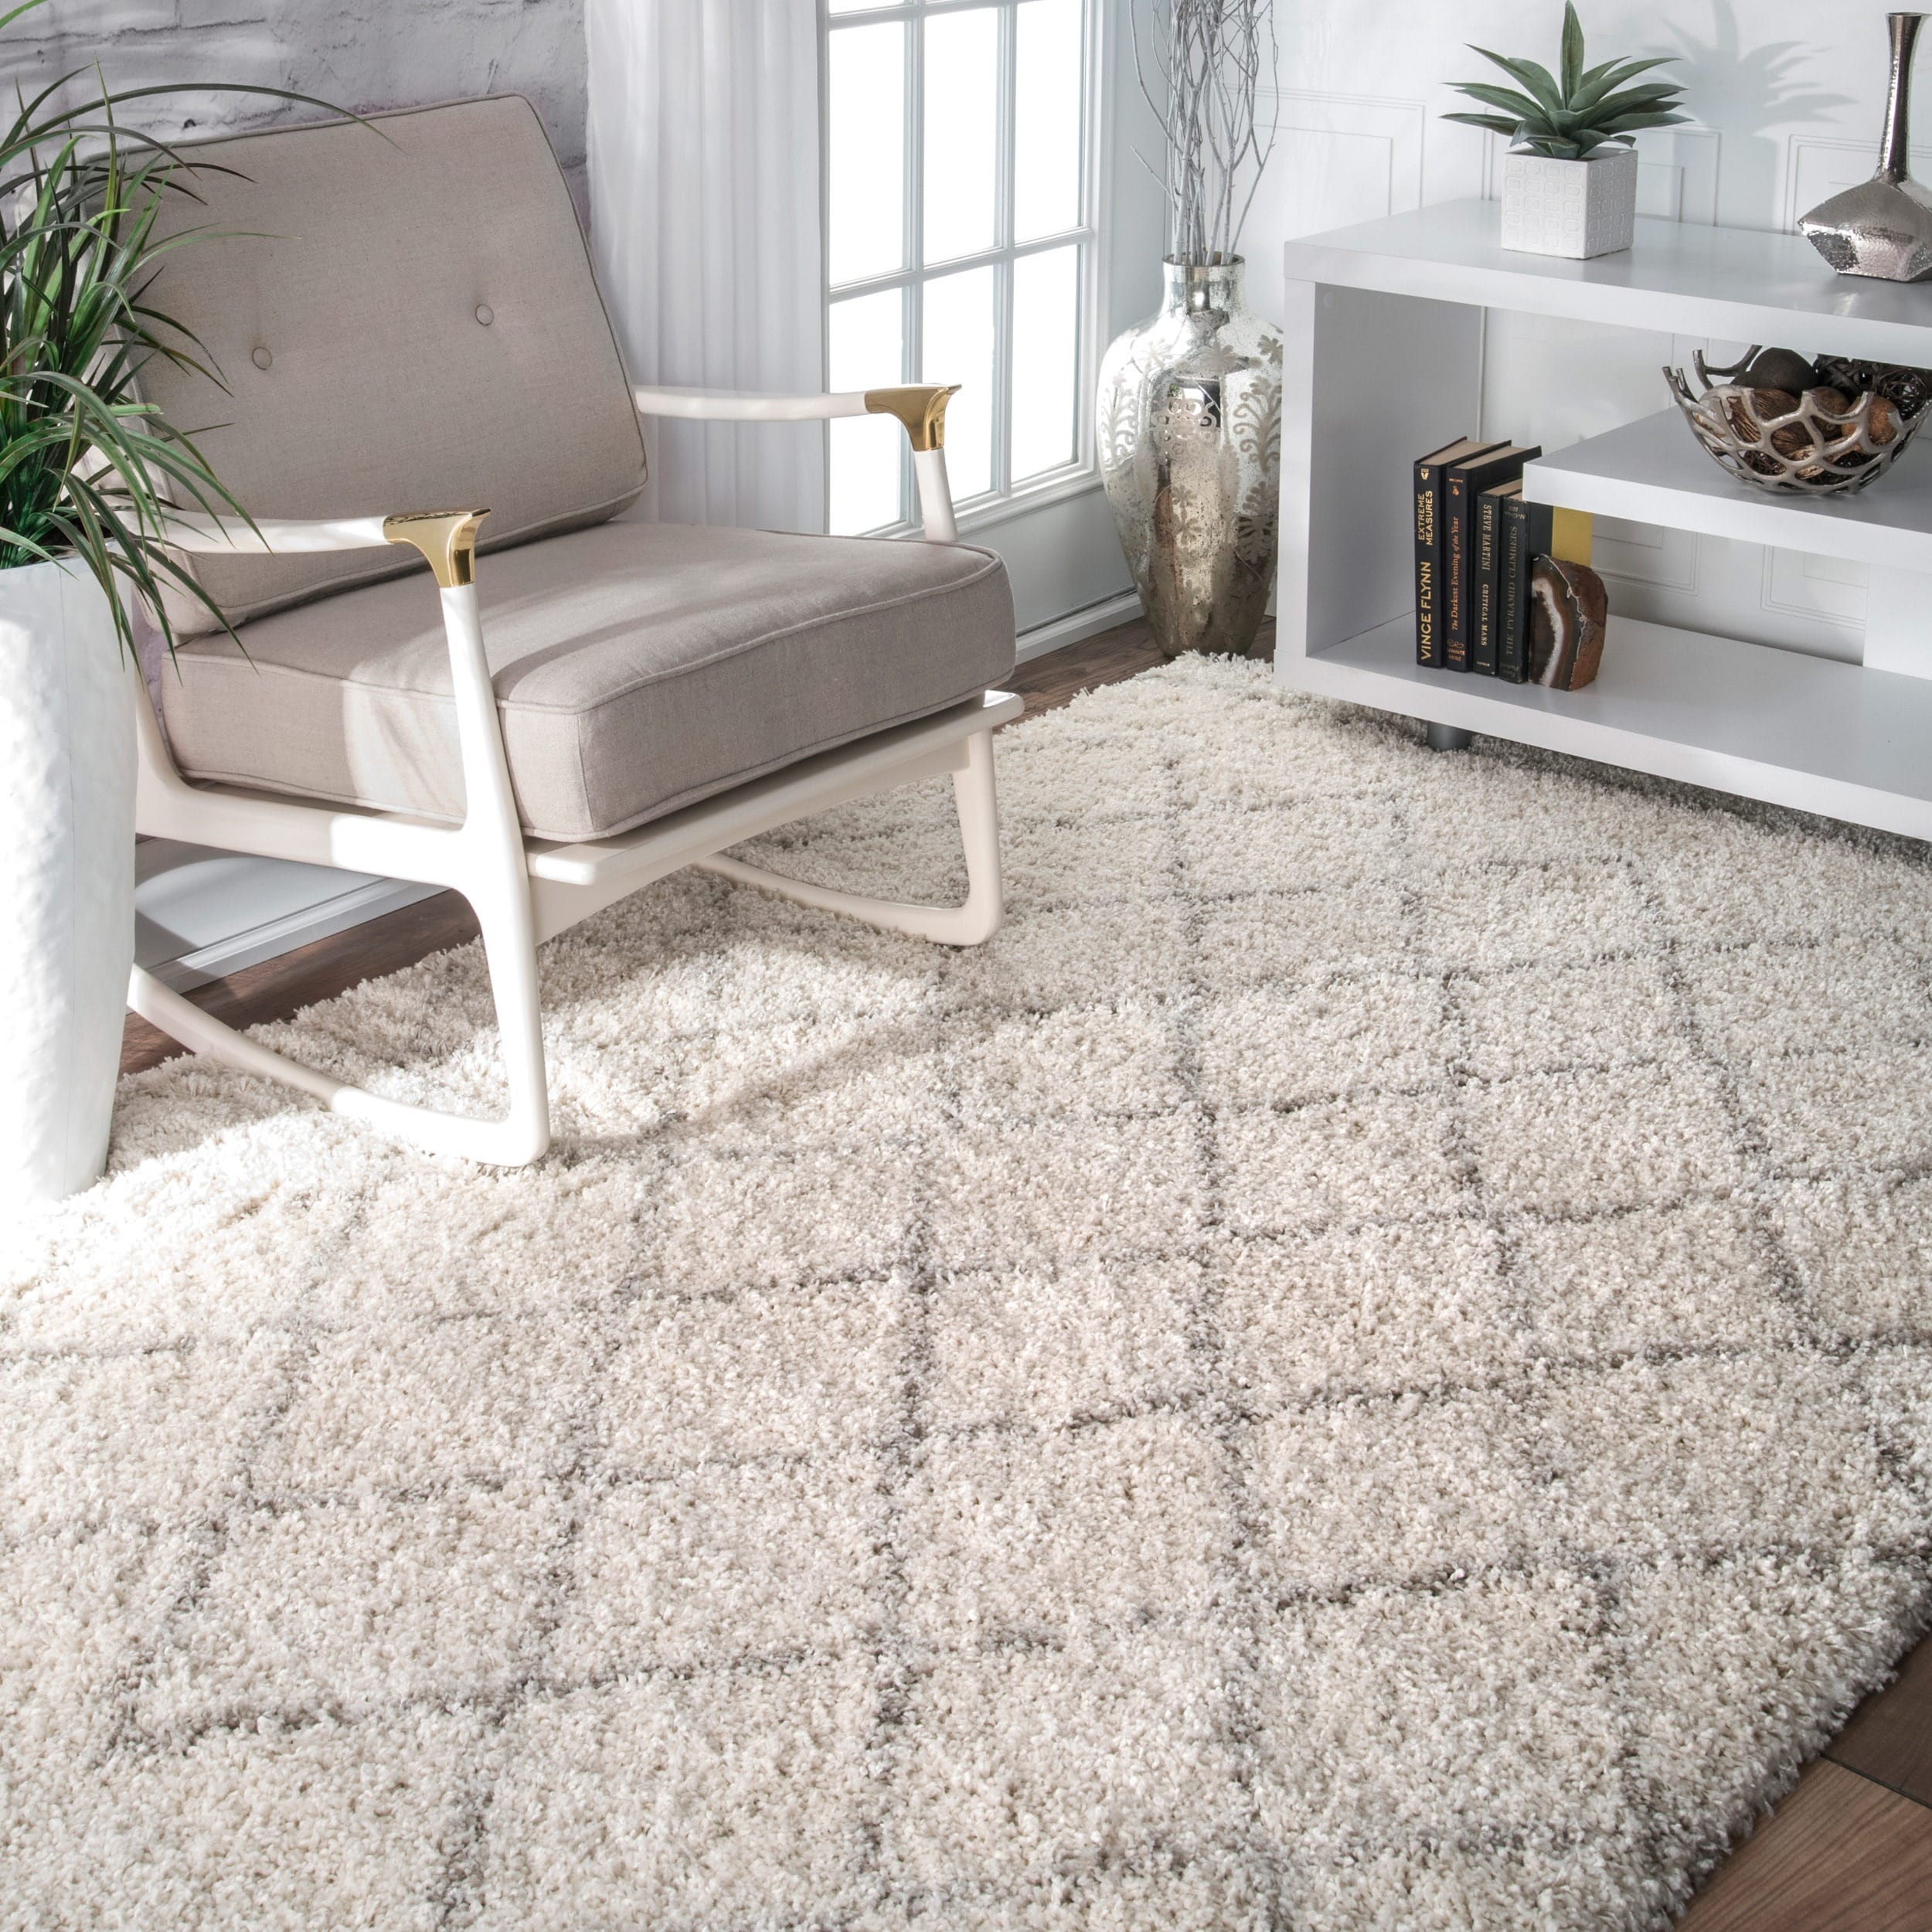 nuLOOM Soft and Plush Moroccan Trellis Natural Shag Rug 5 x 8